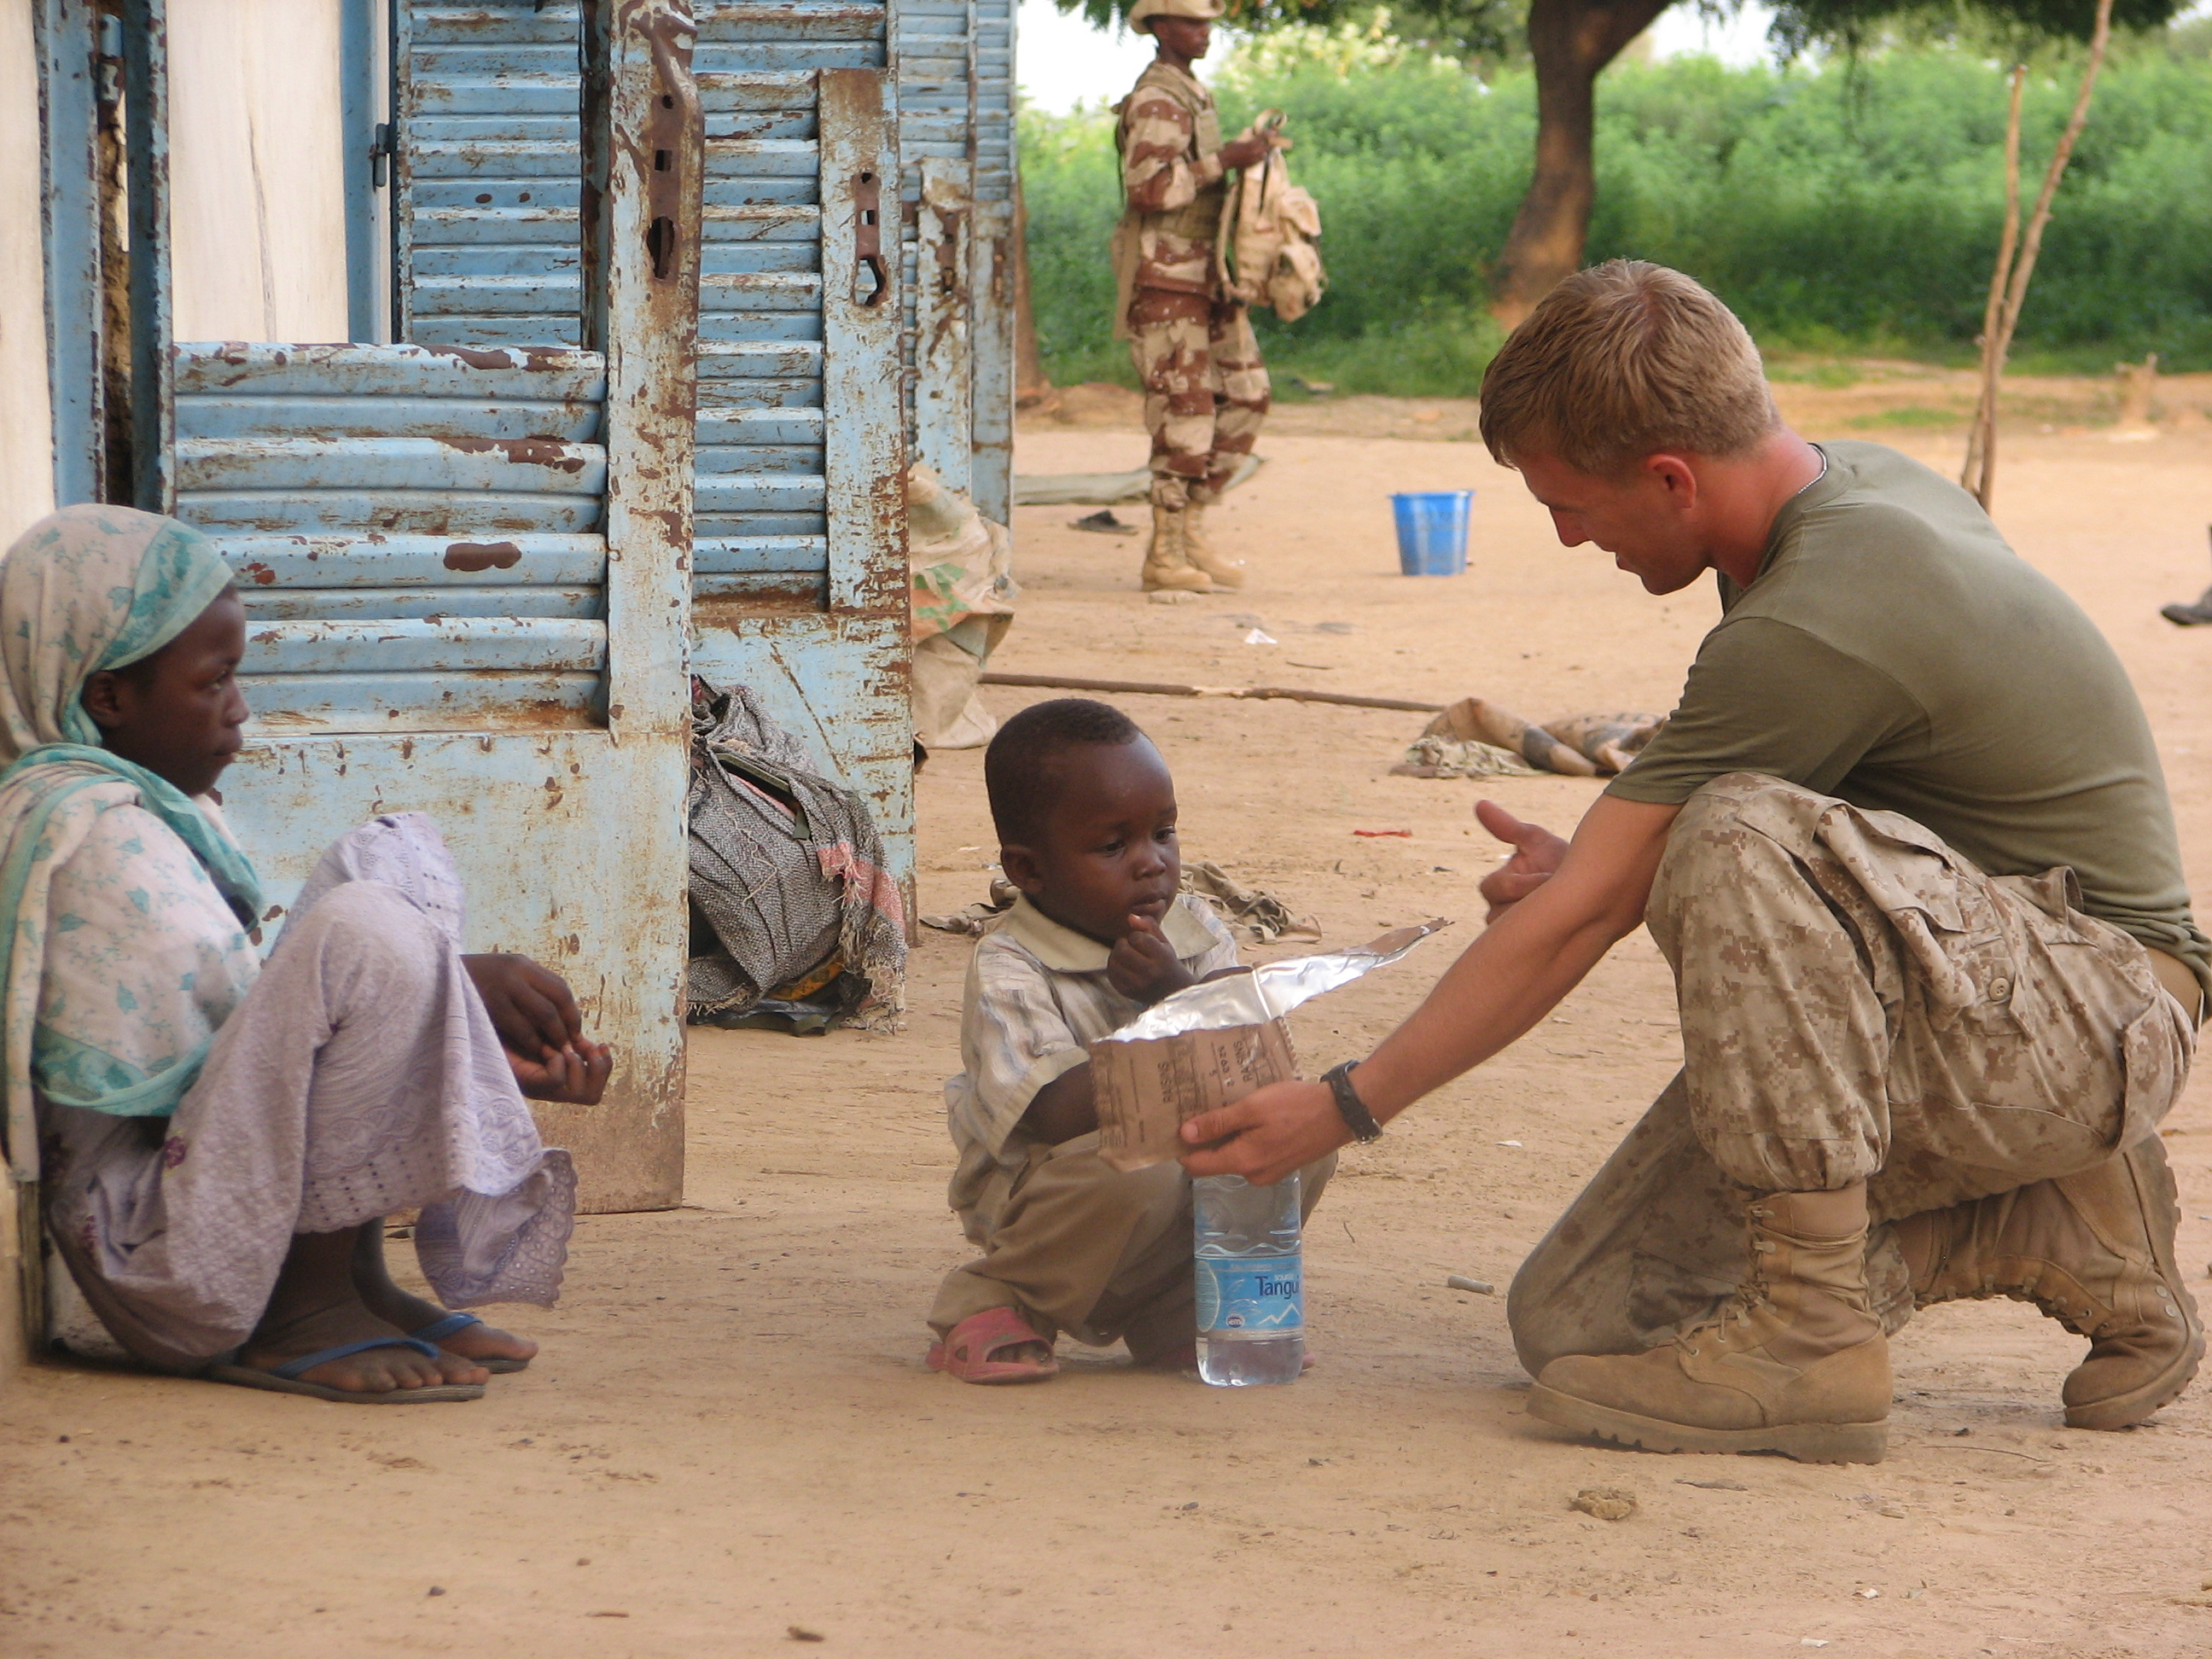 Developing Countries – 5 Ways to Help